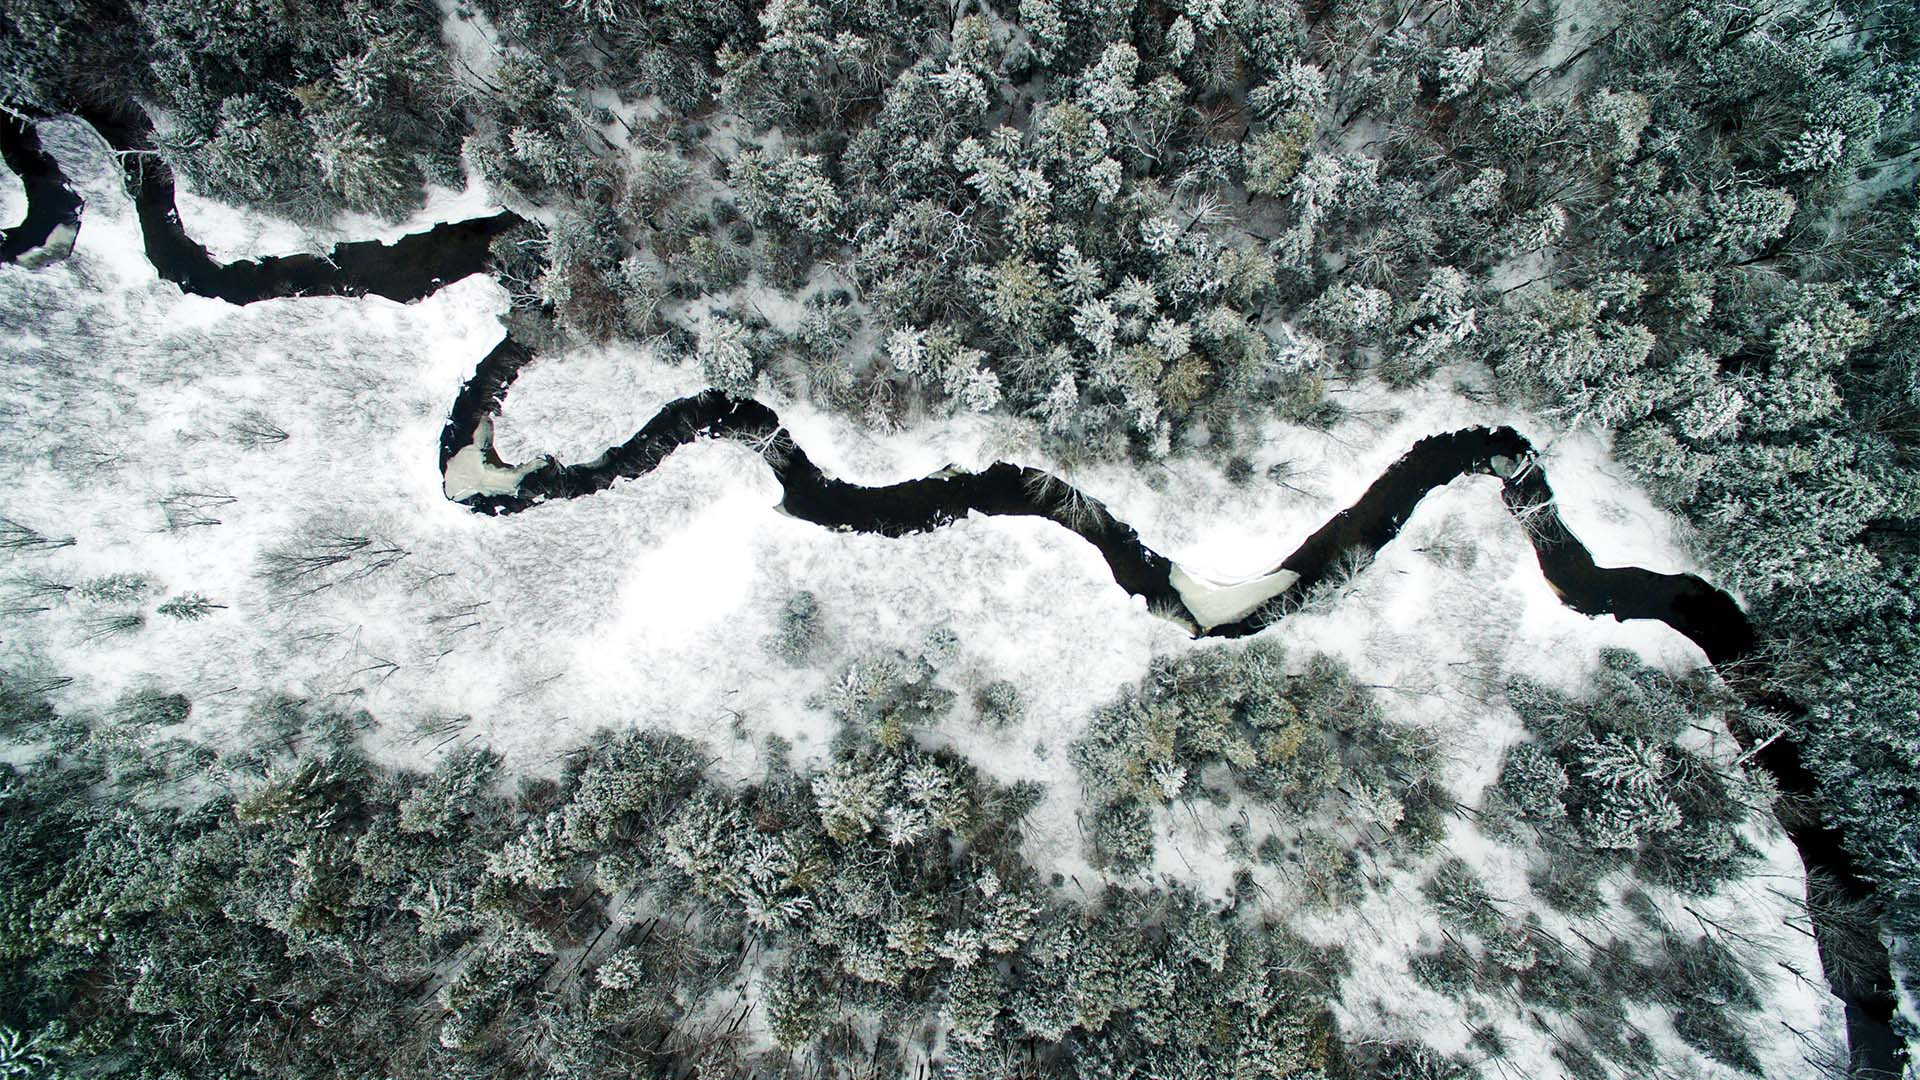 Winter river in upstate New York from Drone Photography Masterclass